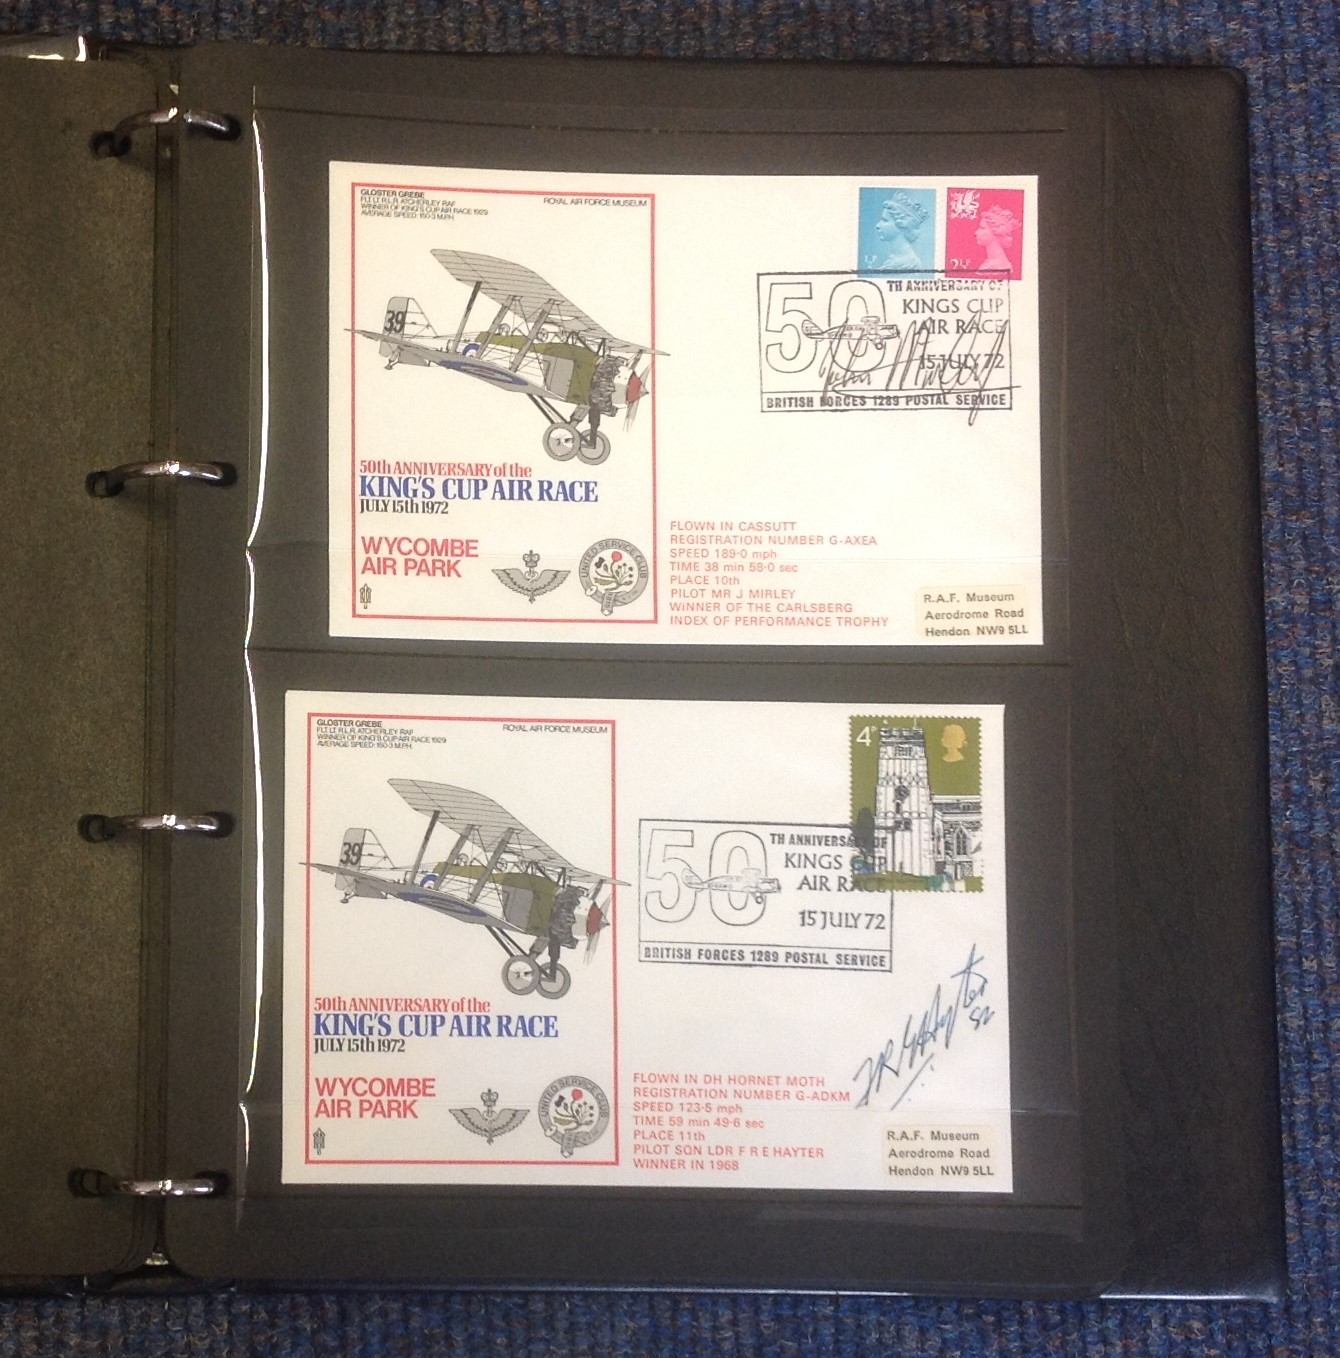 RAF Kings Cup Air Race Series collection in official Black Logoed album. The full set of 41 1972